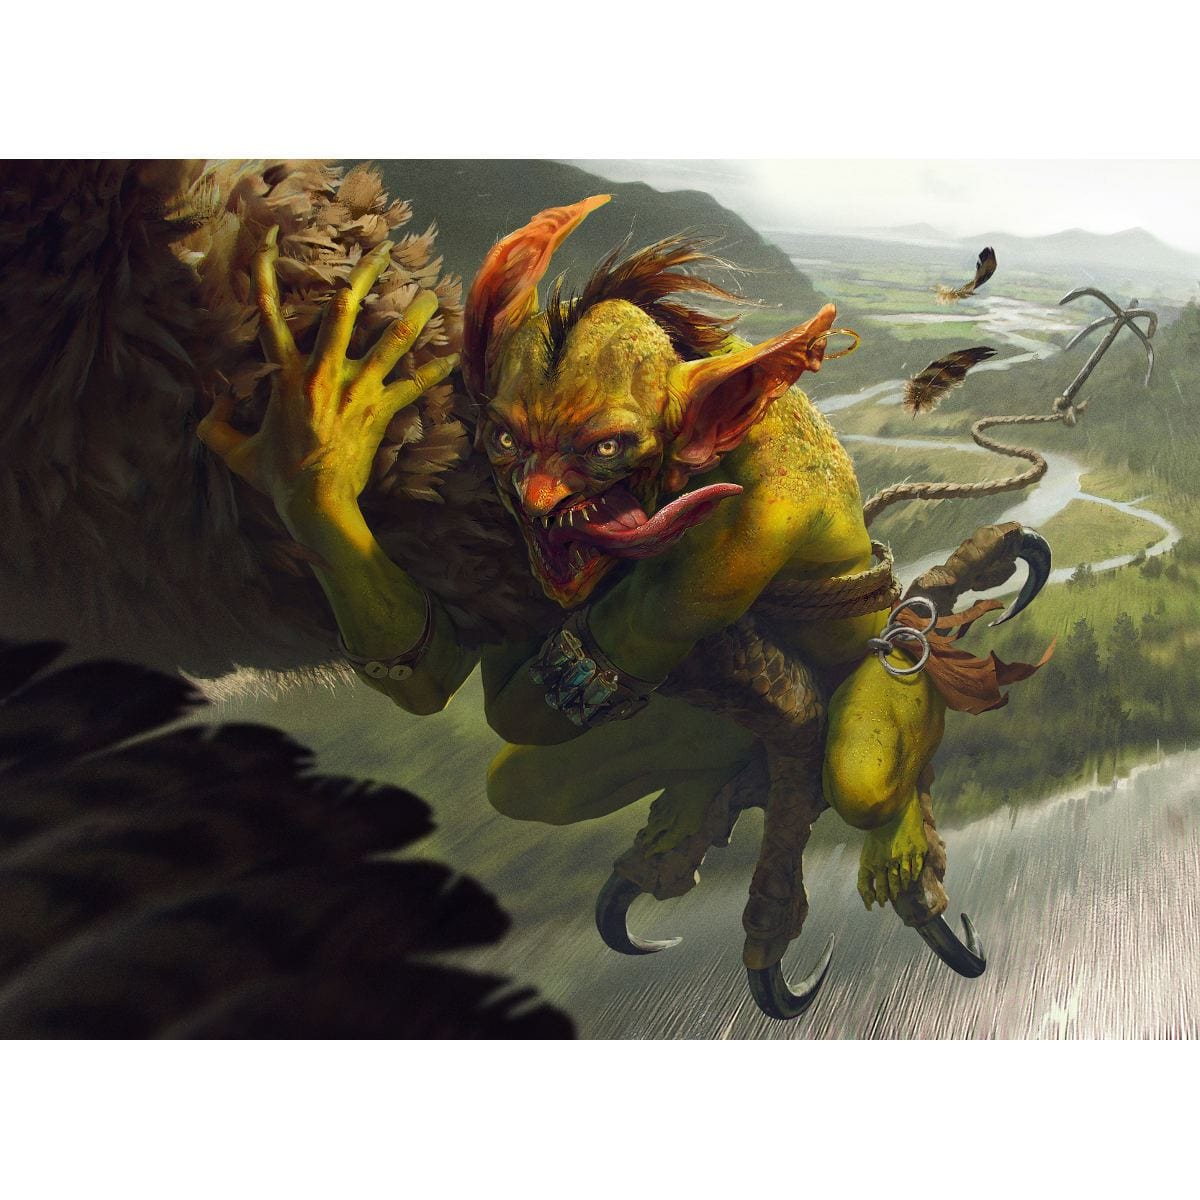 Goblin Bird-Grabber Print - Print - Original Magic Art - Accessories for Magic the Gathering and other card games